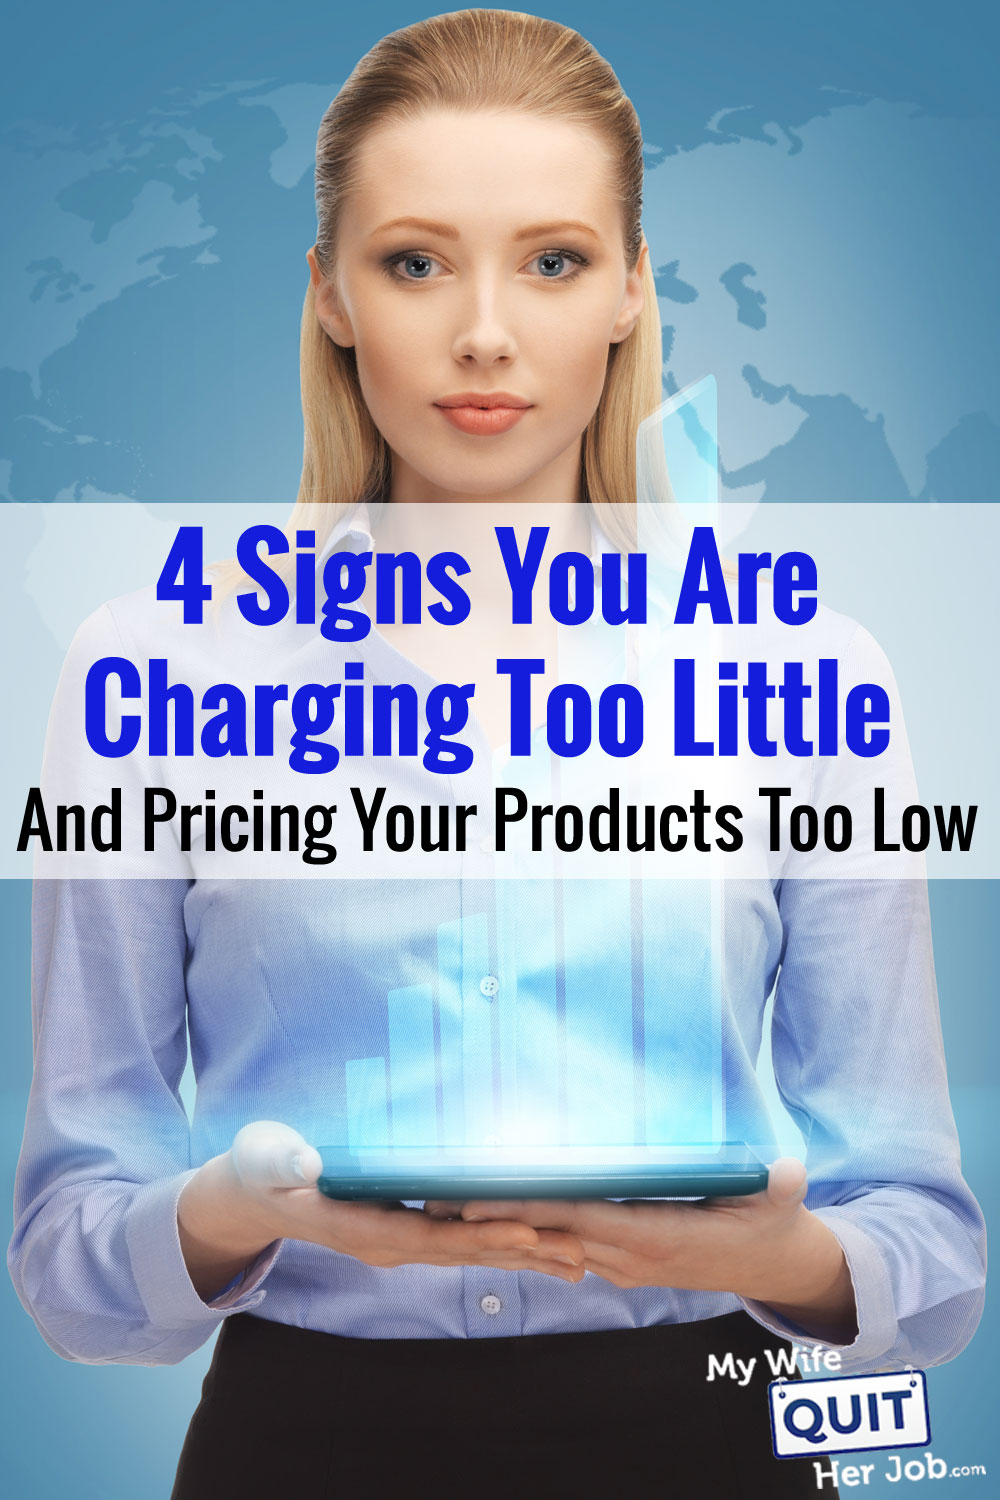 Pricing Strategy - Are You Charging Too Little For Your Products And Services?